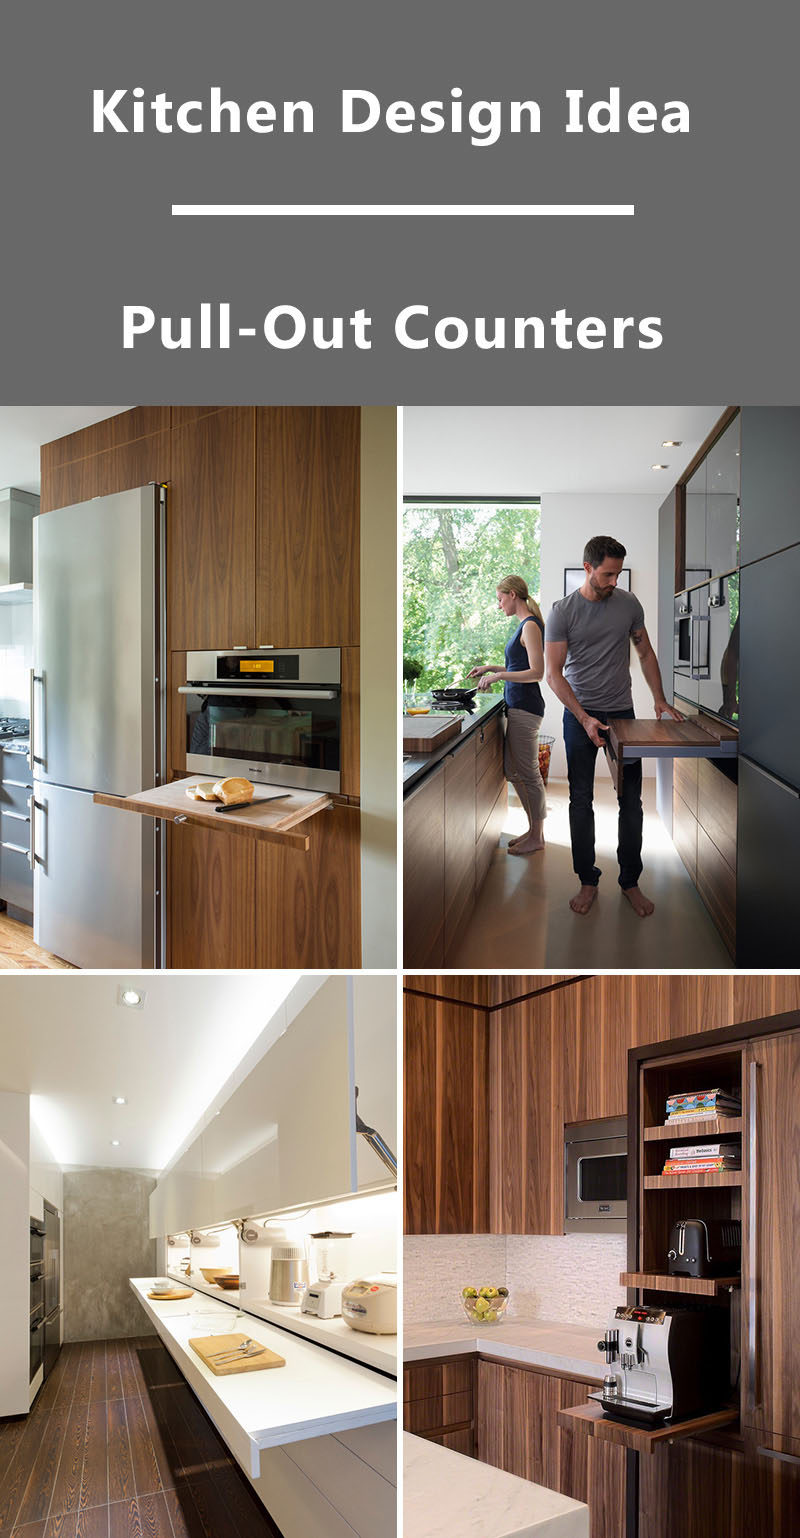 Kitchen Design Idea - Pull-Out Counters (10 Pictures)